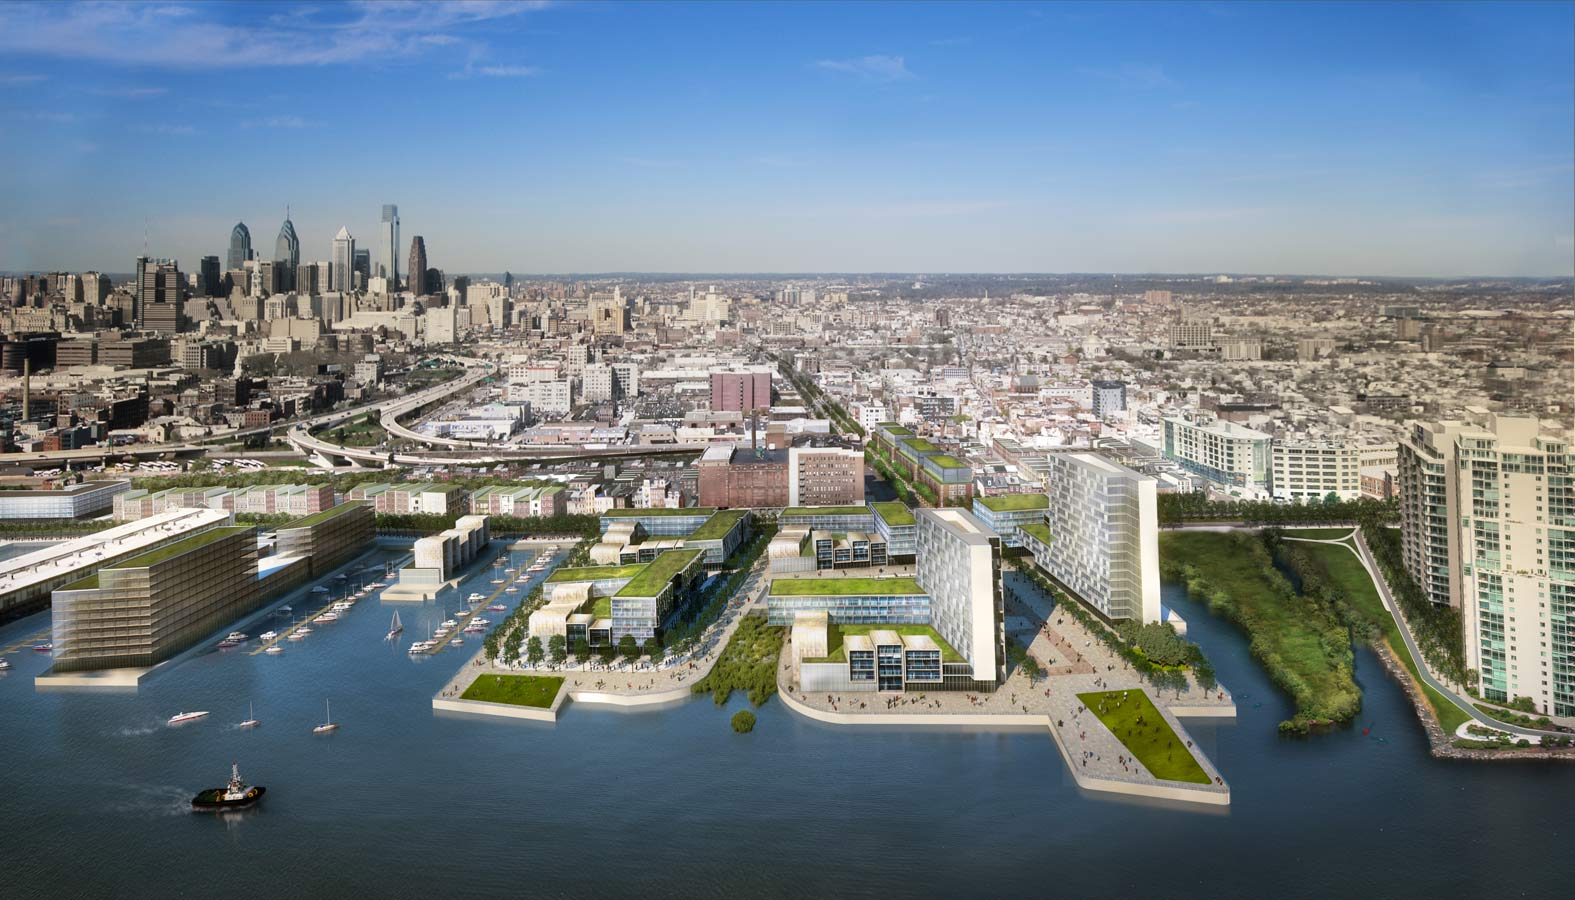 <p>The Spring Garden area is a highly developable section of the waterfront, rich in history and anchored by substantial buildings and vibrant neighborhoods.</p>